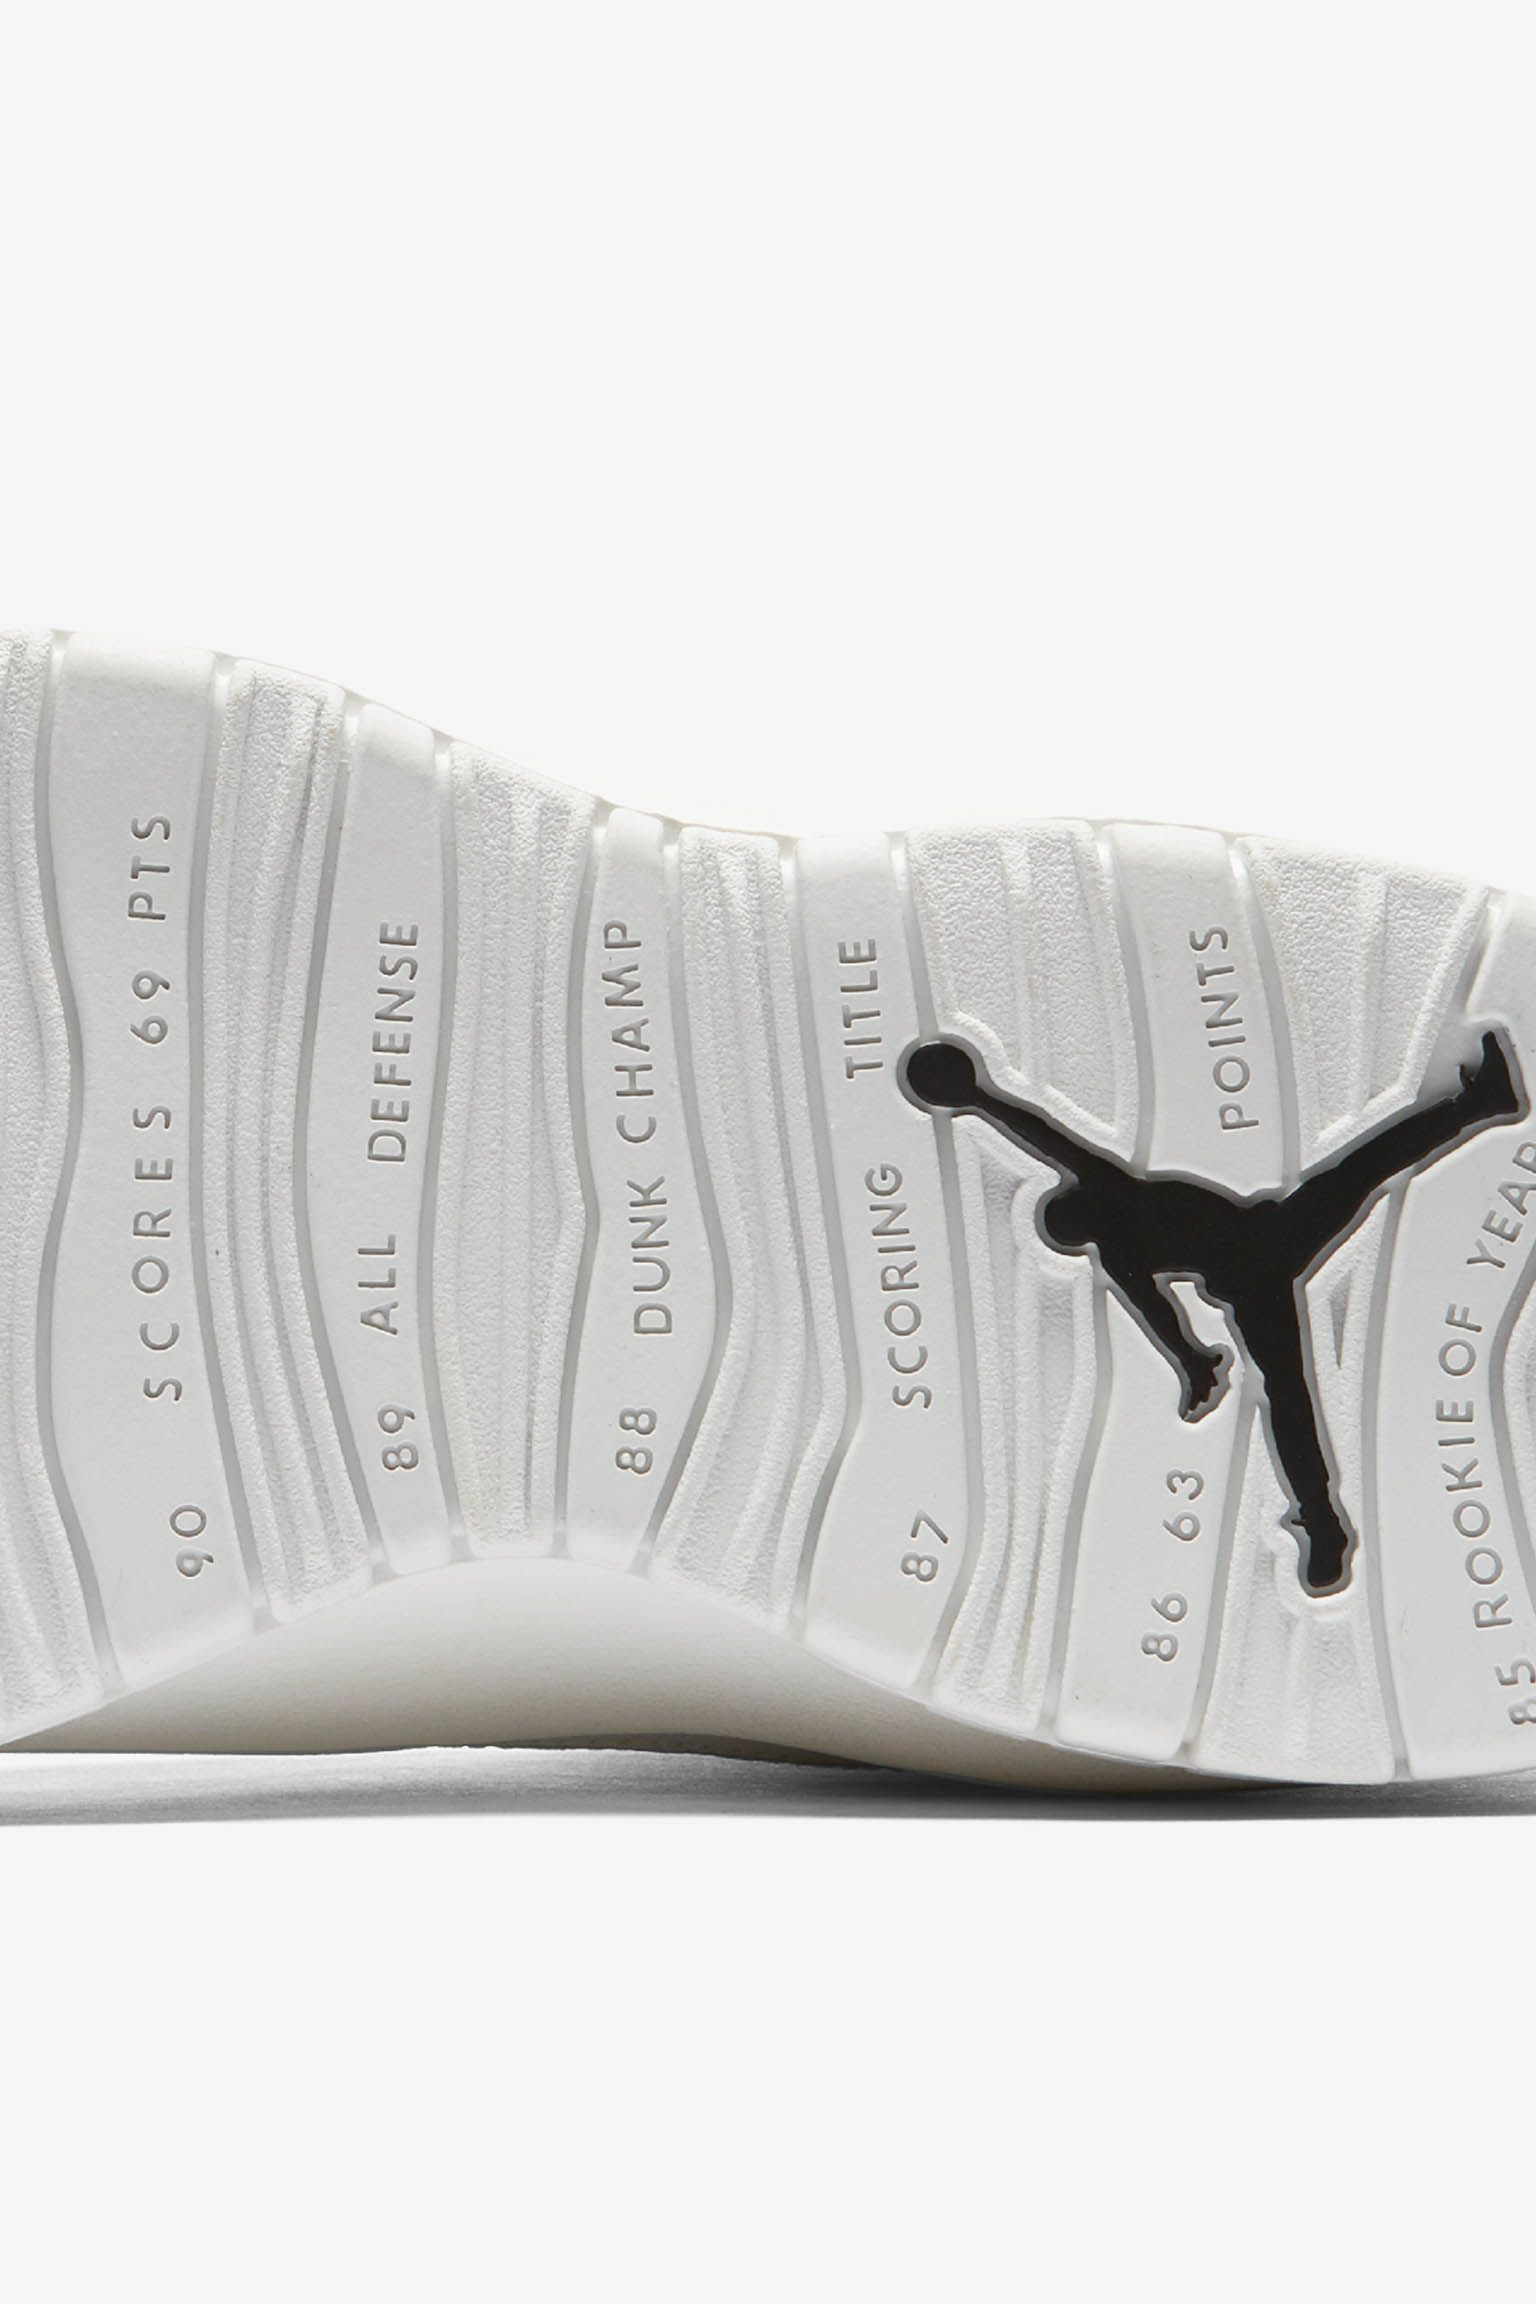 Air Jordan 10 Retro 'Summit White & Black' Release Date